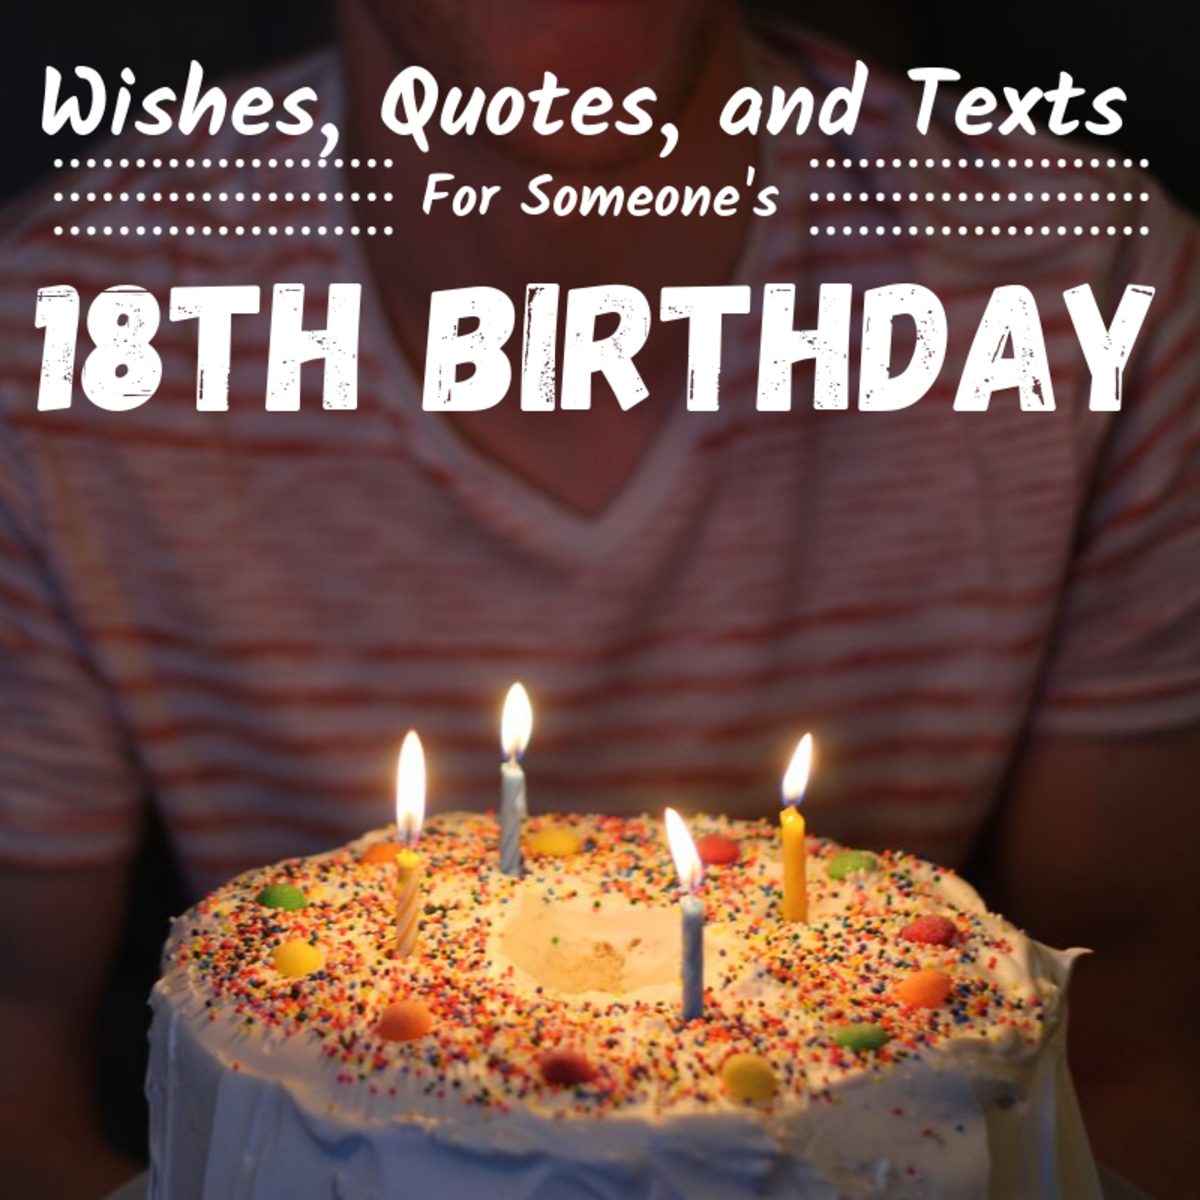 Marvelous 18Th Birthday Wishes Texts And Quotes 152 Example Messages Funny Birthday Cards Online Elaedamsfinfo